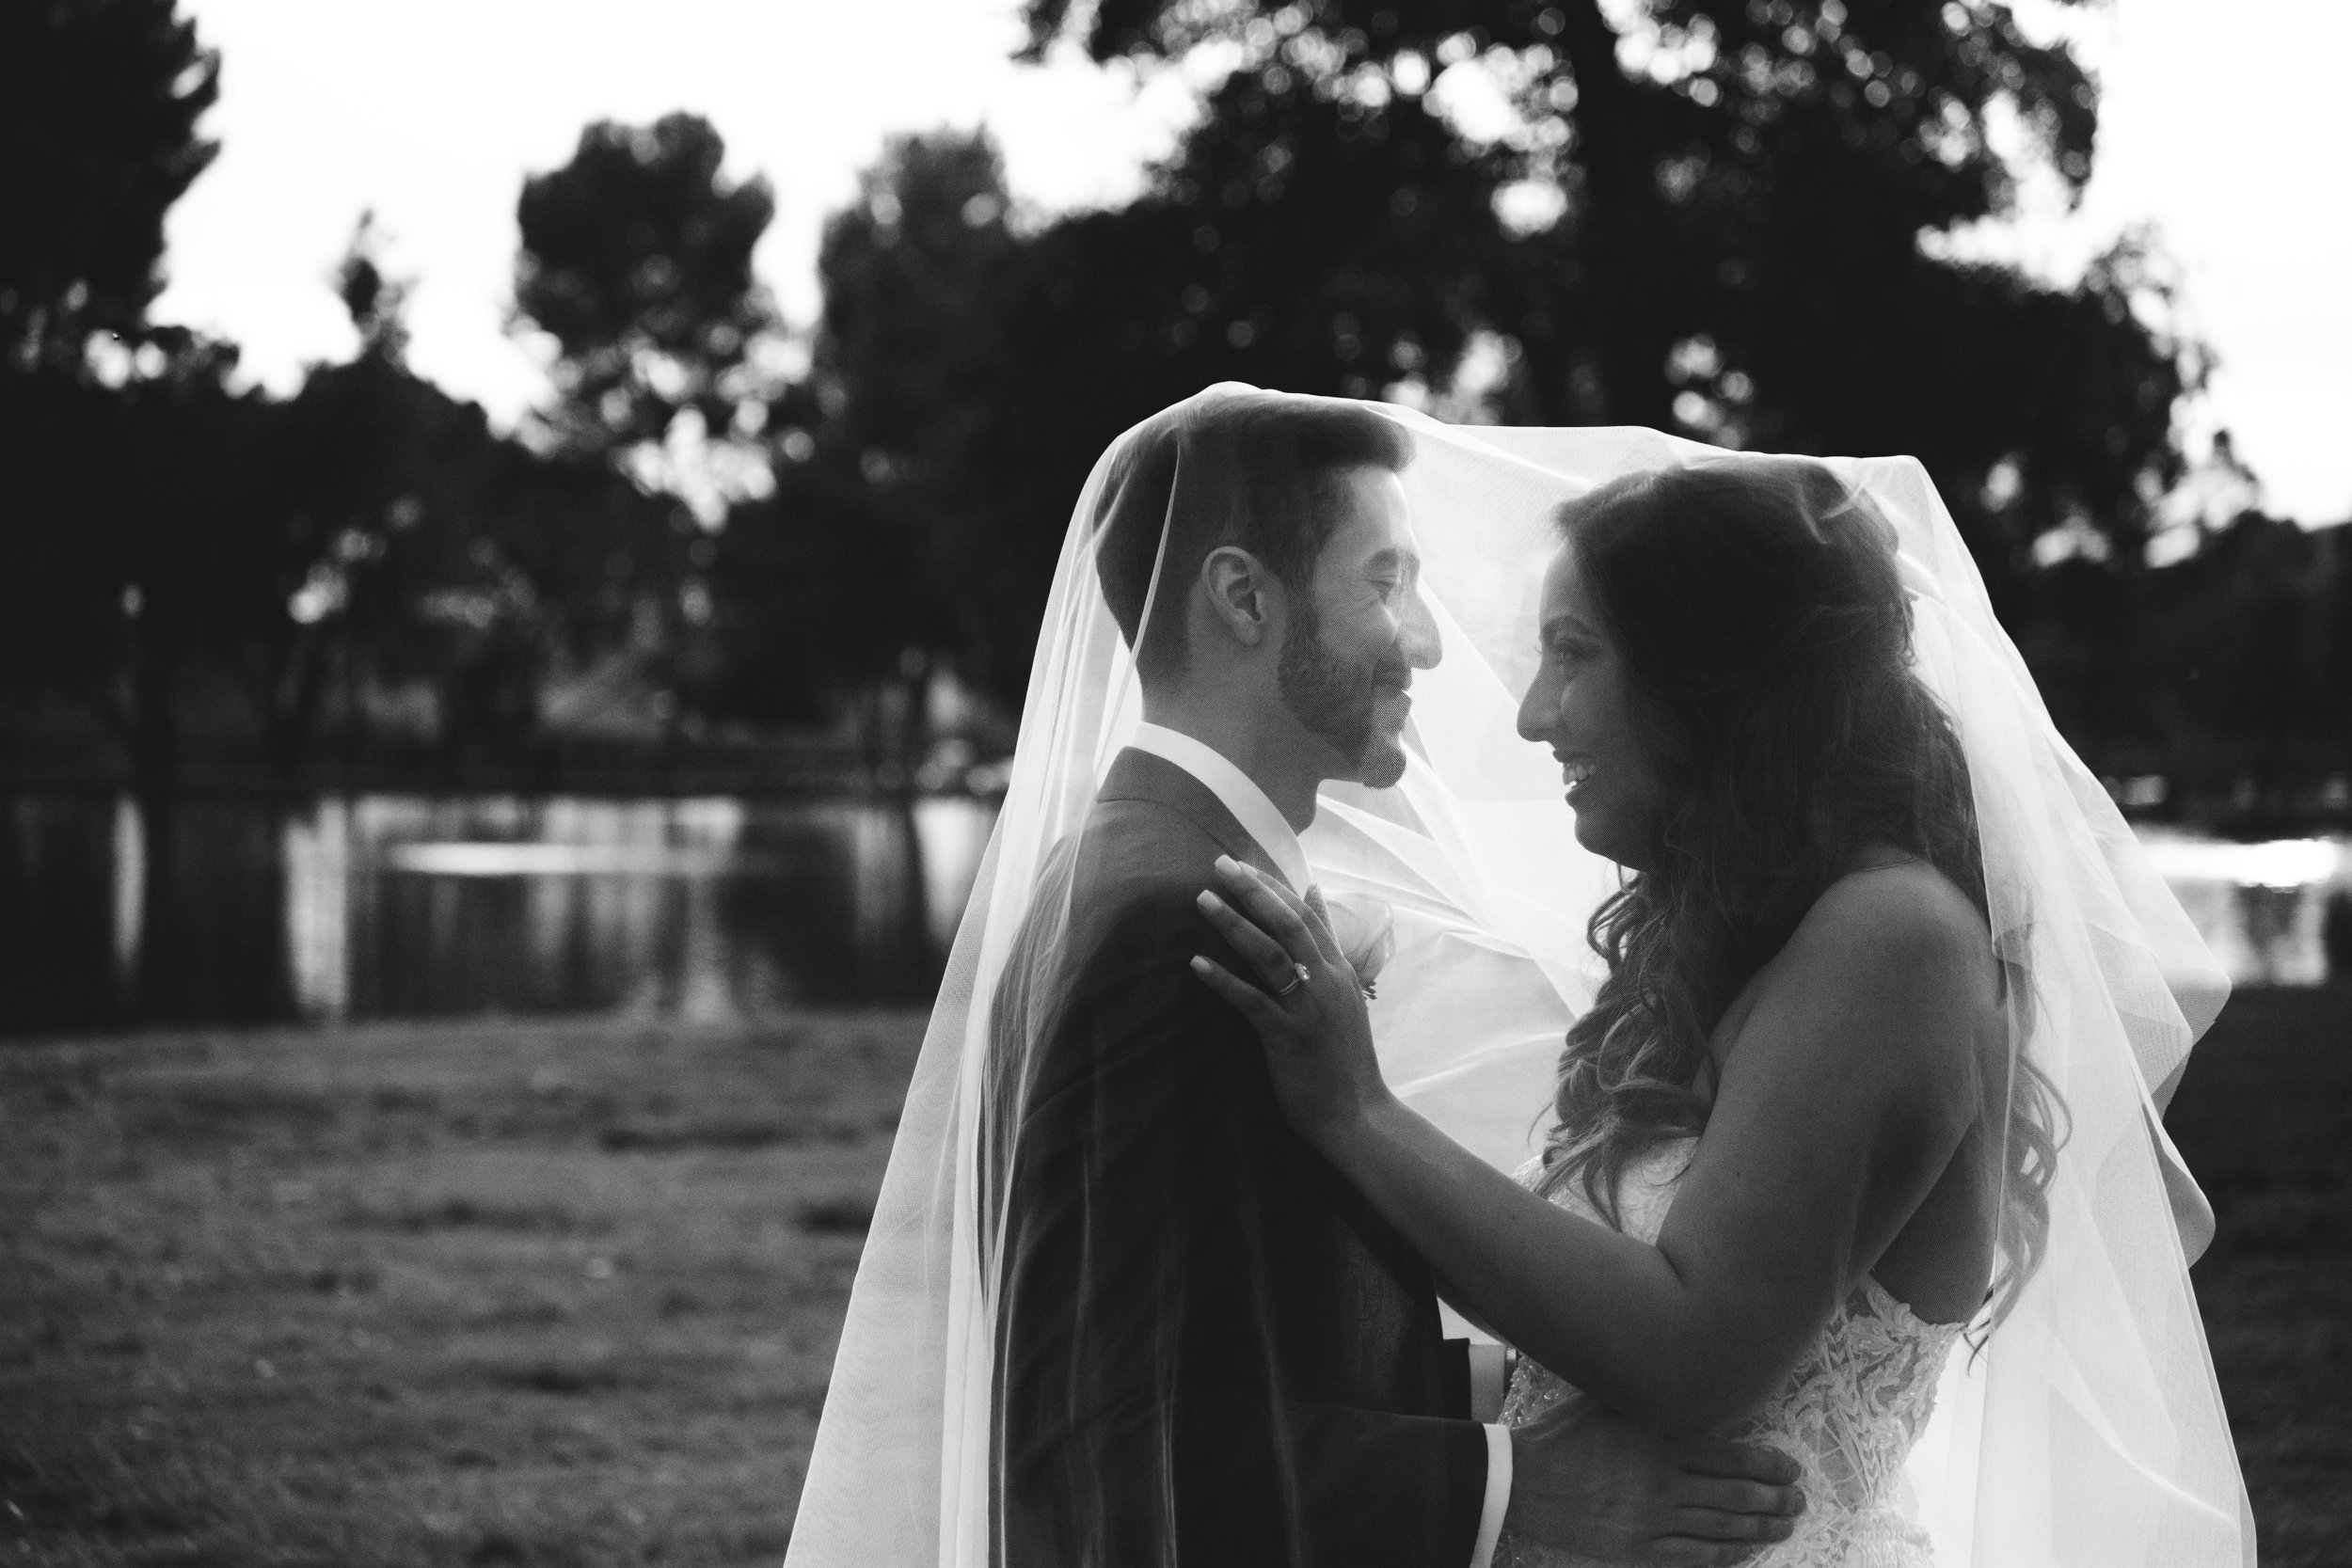 Black and white photo of a bride and groom underneath the brides veil.